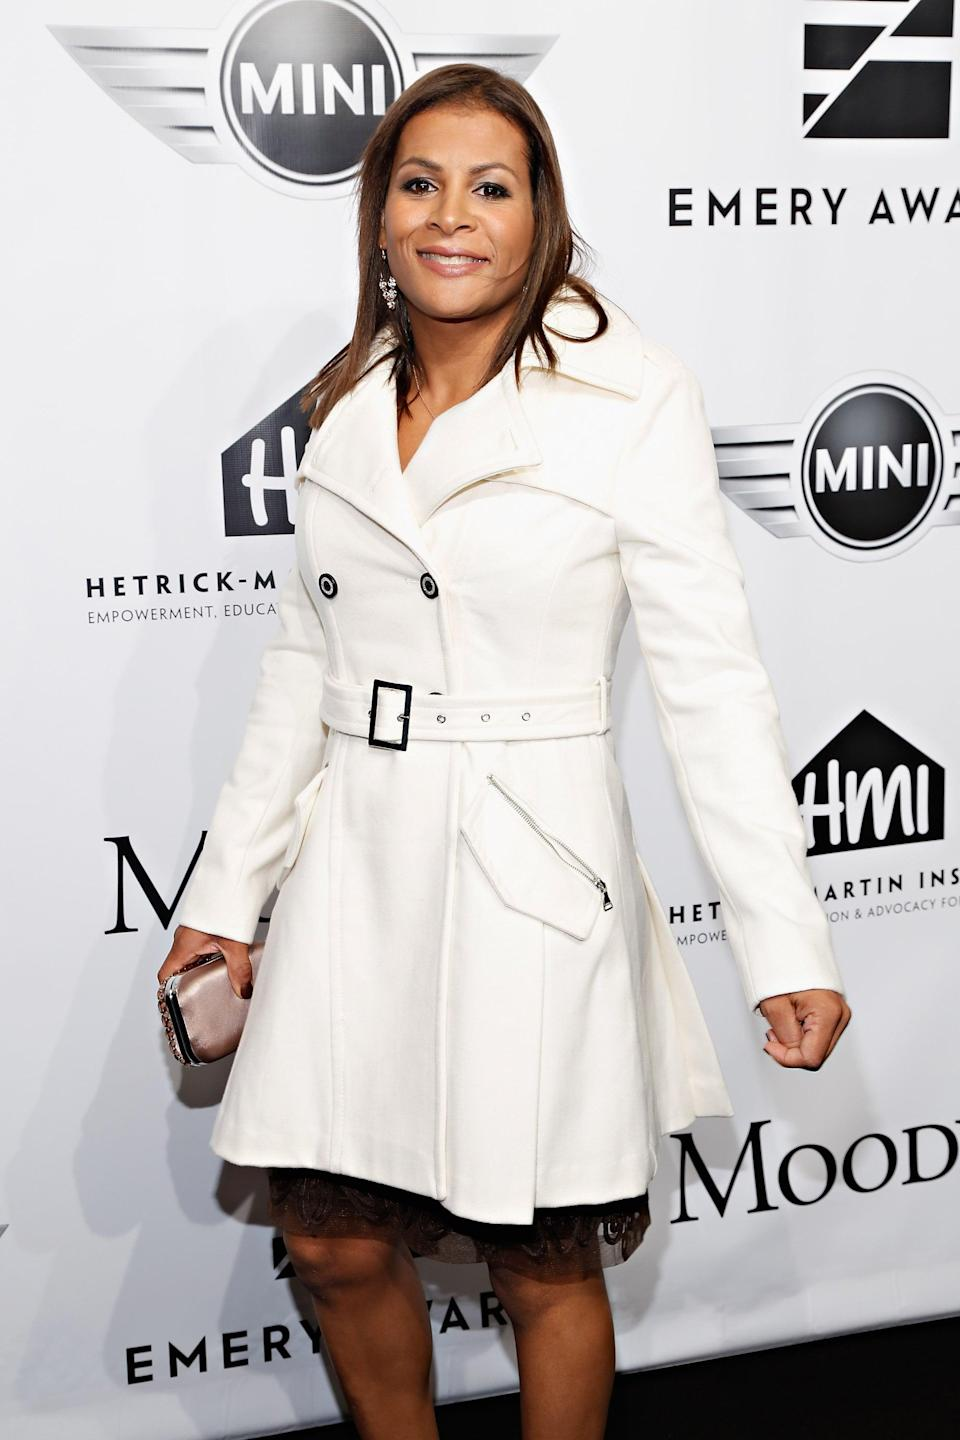 """<p>Fallon Fox, the first transgender professional MMA fighter, endured harsh criticism from the fighting community after coming out in 2013. She persevered nonetheless, fighting in six professional matches and being inducted into the National Gay and Lesbian Sports Hall of Fame in 2014. </p> <p>""""I never set out to do this, but <a href=""""https://www.nytimes.com/2013/05/13/sports/for-transgender-fighter-fallon-fox-there-is-solace-in-the-cage.html"""" class=""""link rapid-noclick-resp"""" rel=""""nofollow noopener"""" target=""""_blank"""" data-ylk=""""slk:I have to"""">I have to</a>,"""" Fox told the <strong>New York Times</strong> in 2013. """"I'll stand here, for my community, because I have no choice.""""</p>"""